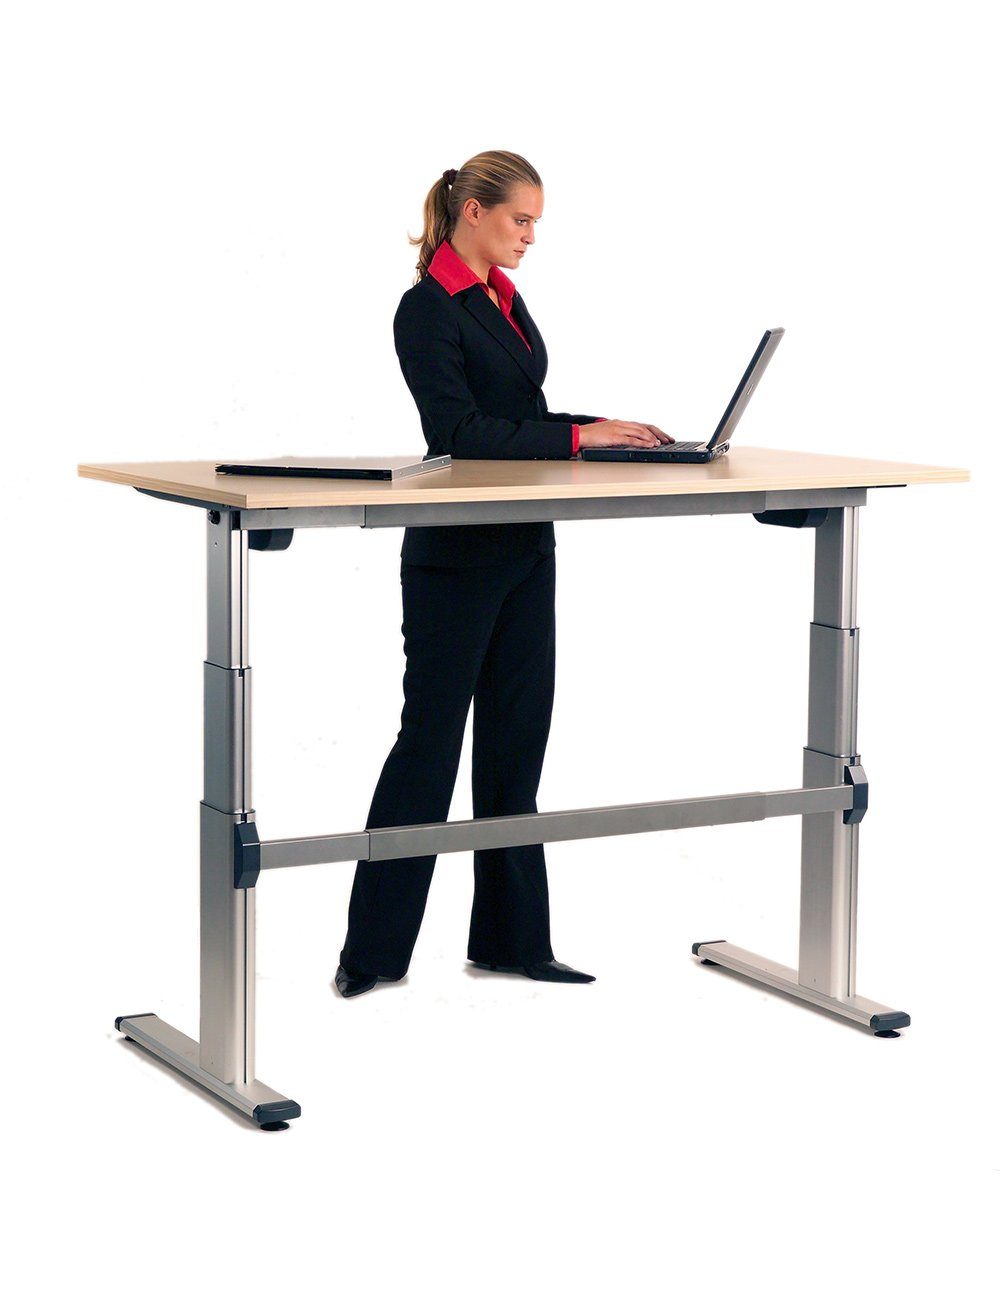 Aluforce pro 250 m online ergonomics for Standing desk at home